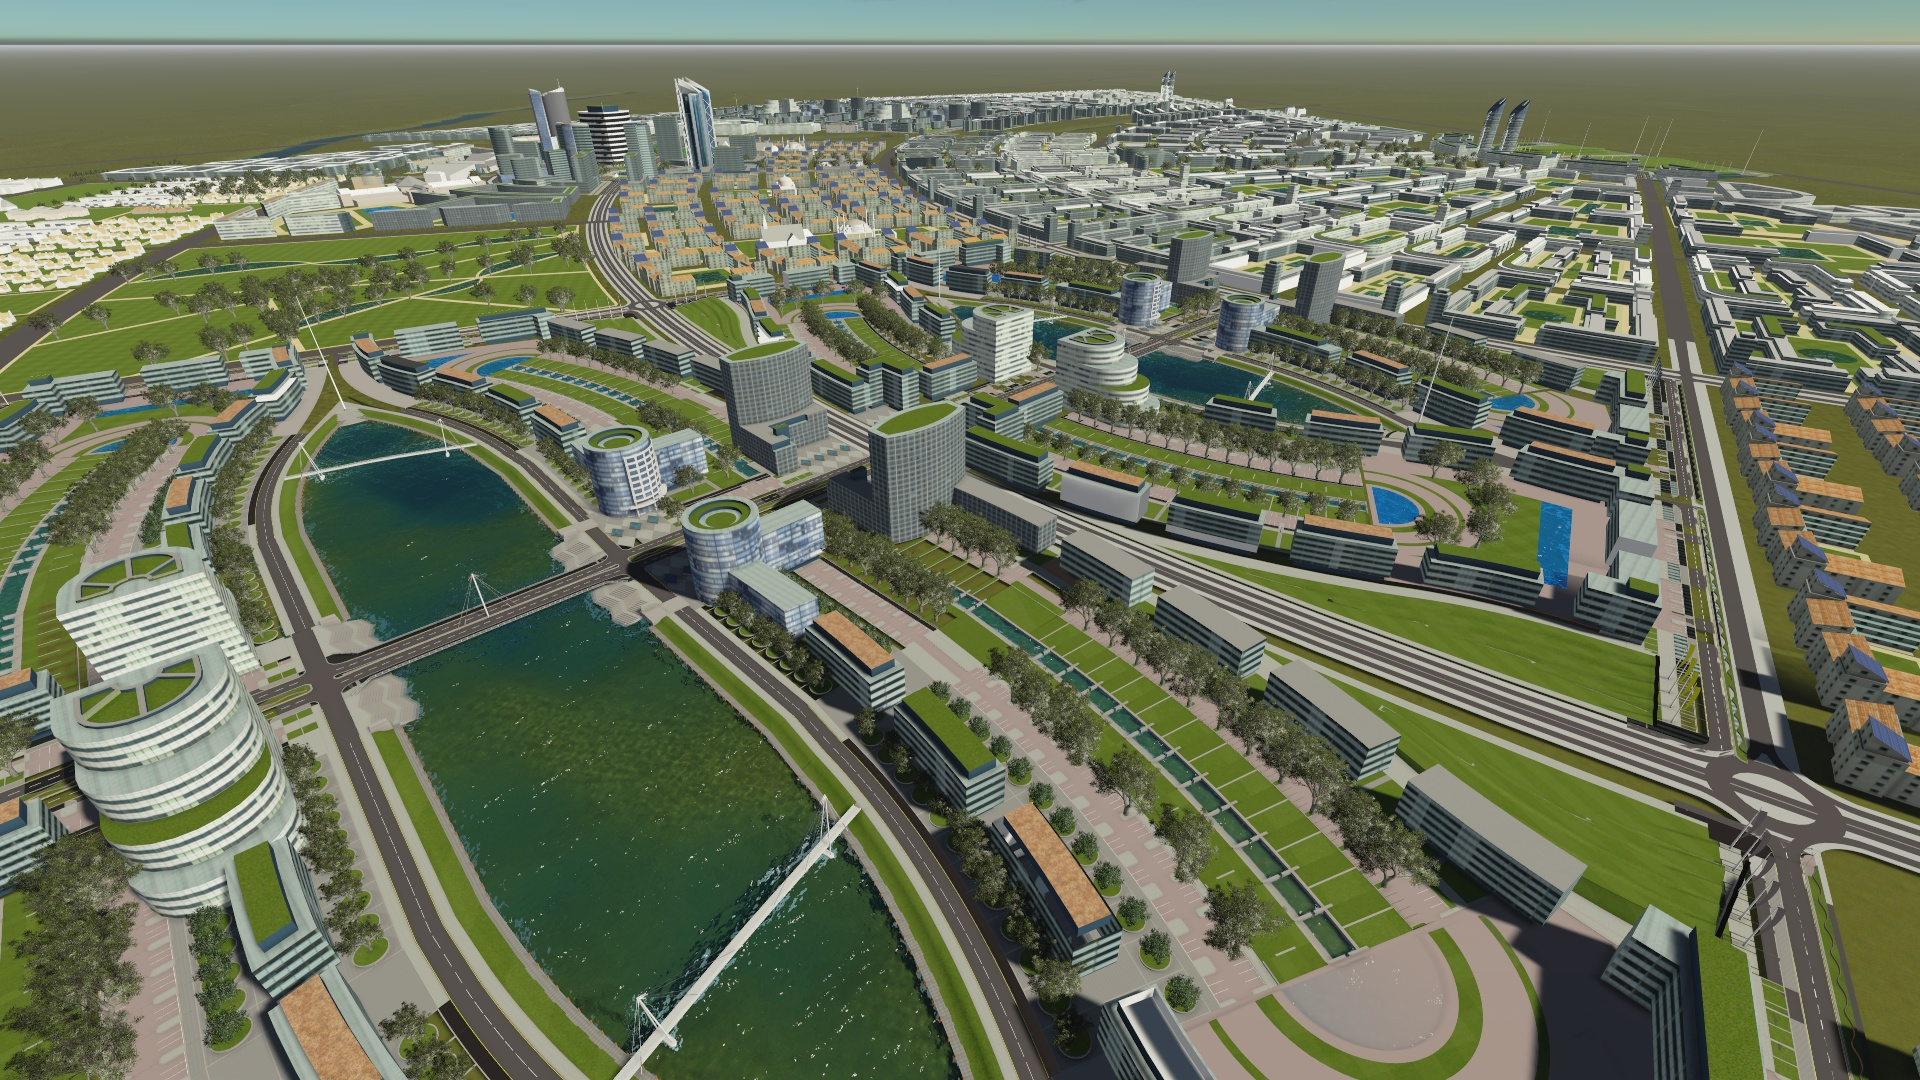 Konza Tech- City Vision - A Sylicone Valley for Kenya - Image courtesy of randcorporaterealestate.co.za